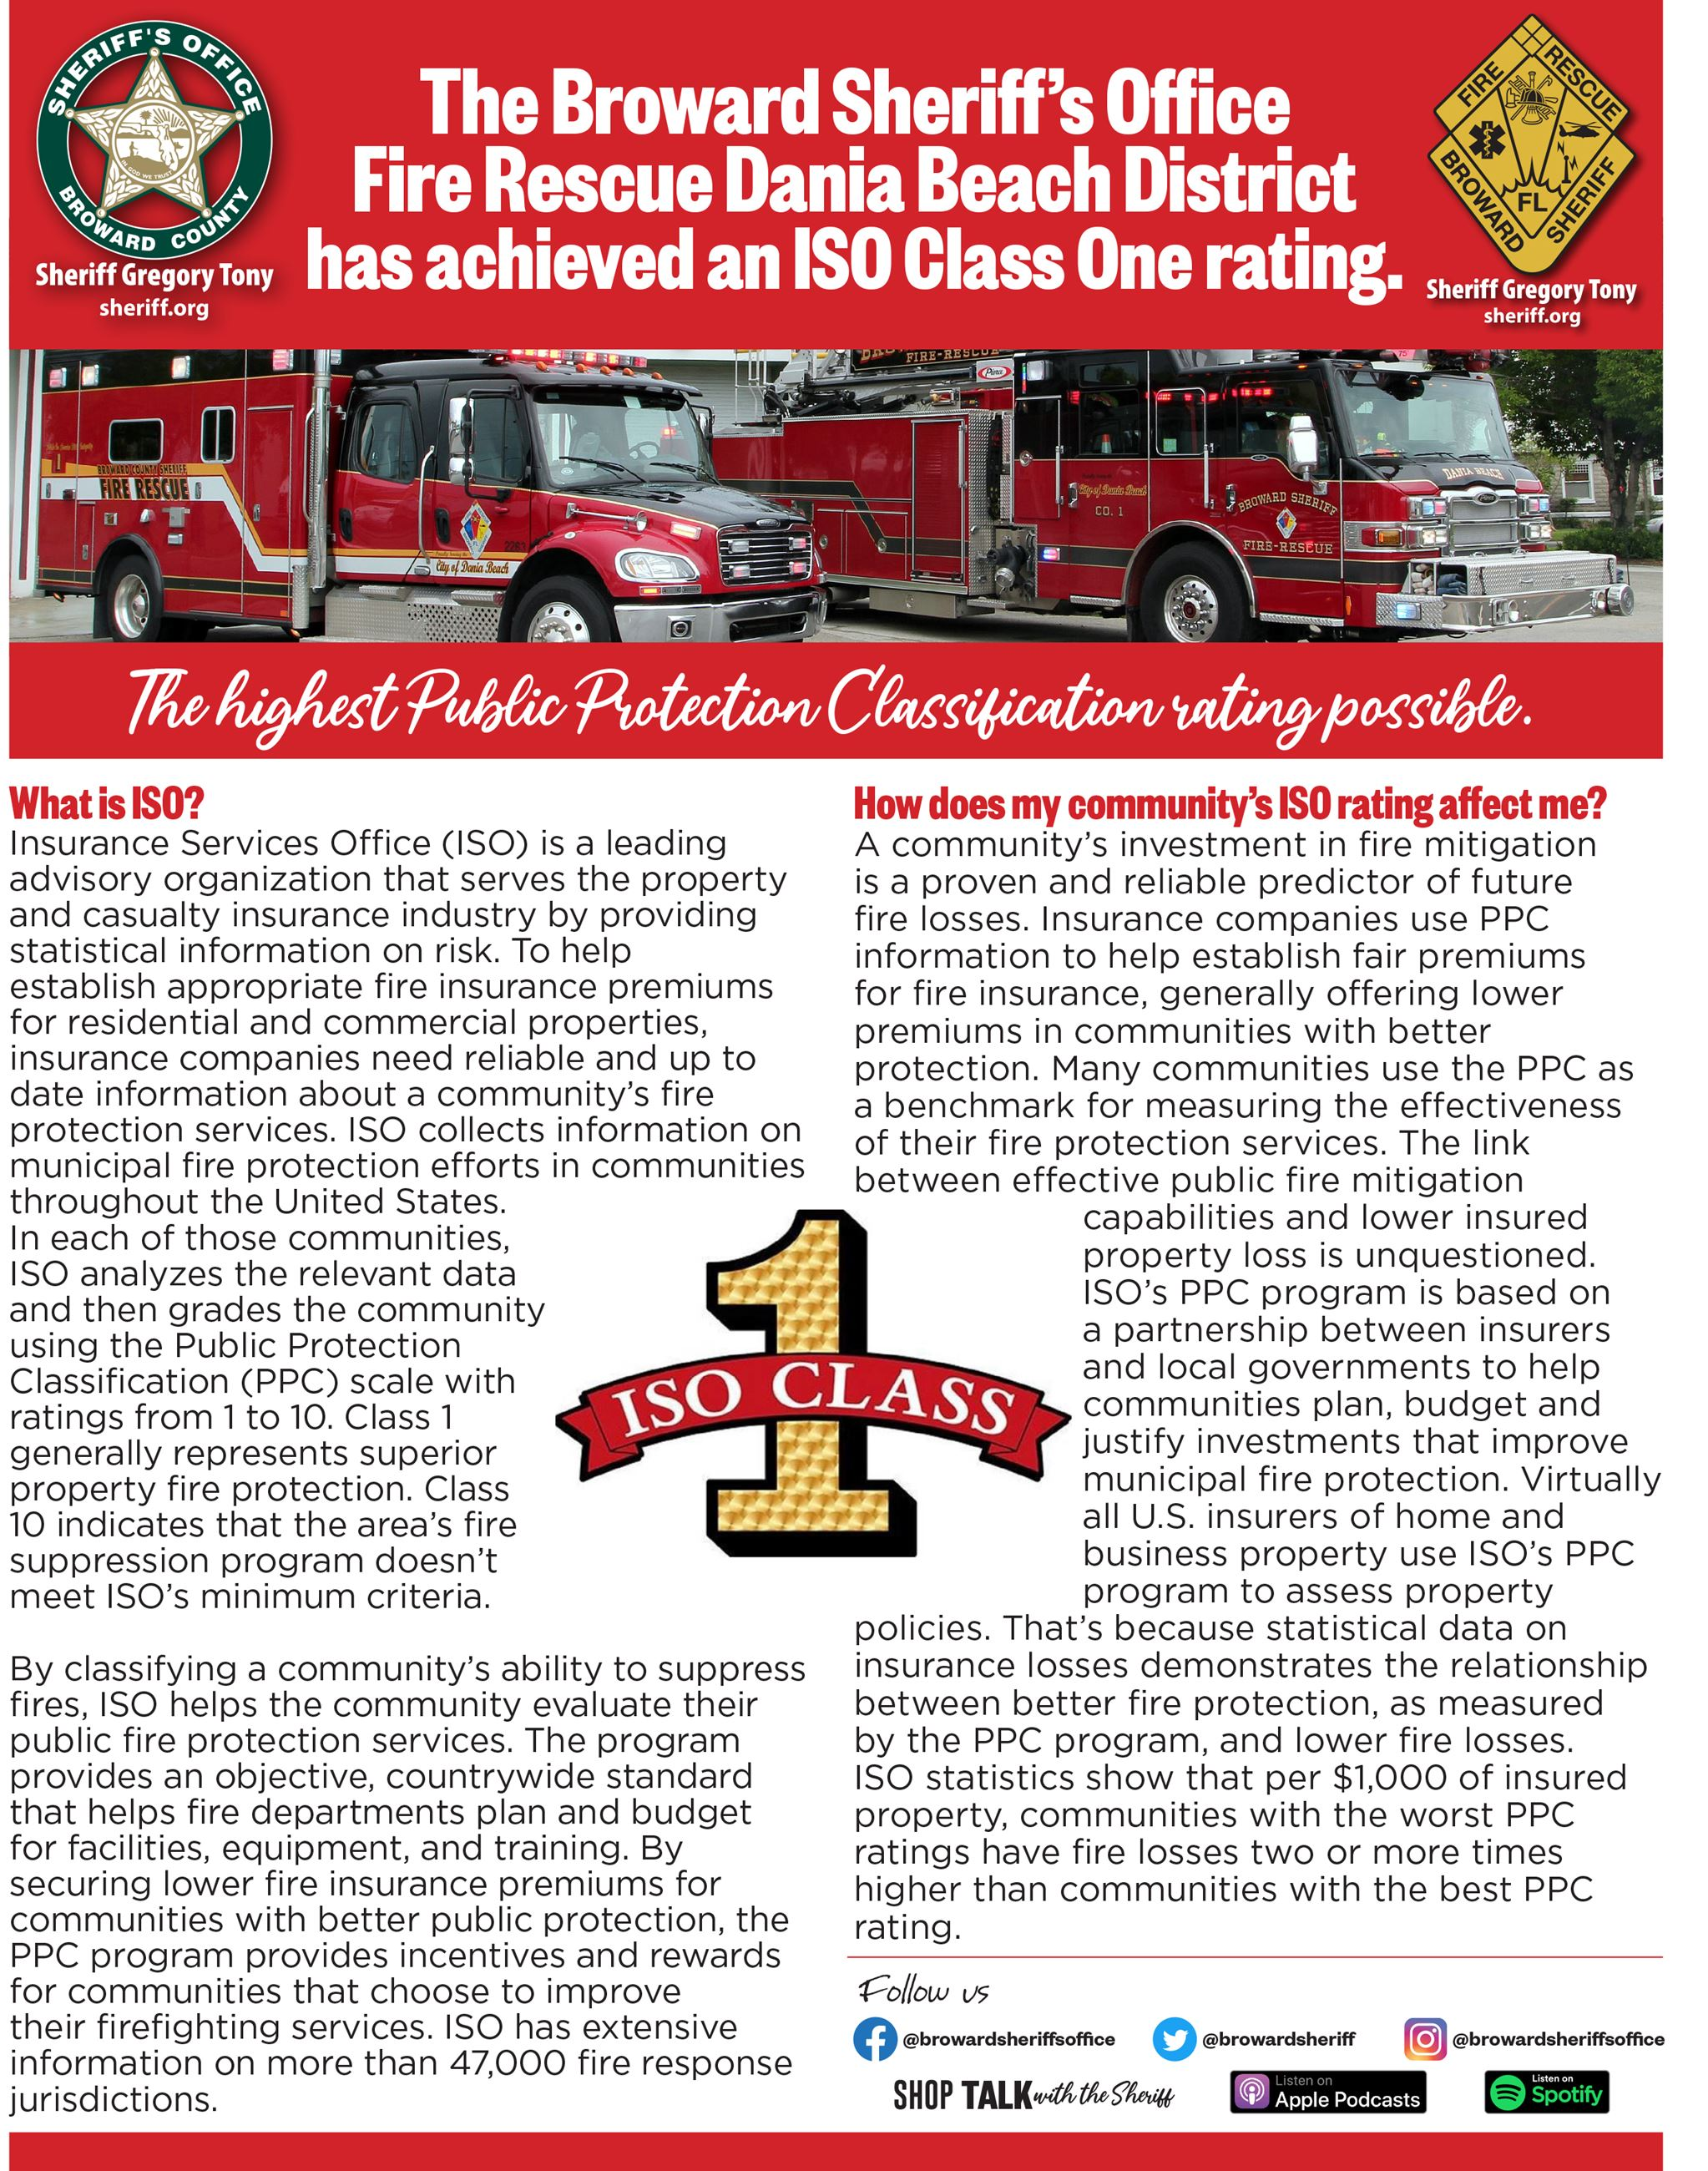 BSO Fire Rescue Dania Beach District Achieves ISO Class 1 Rating